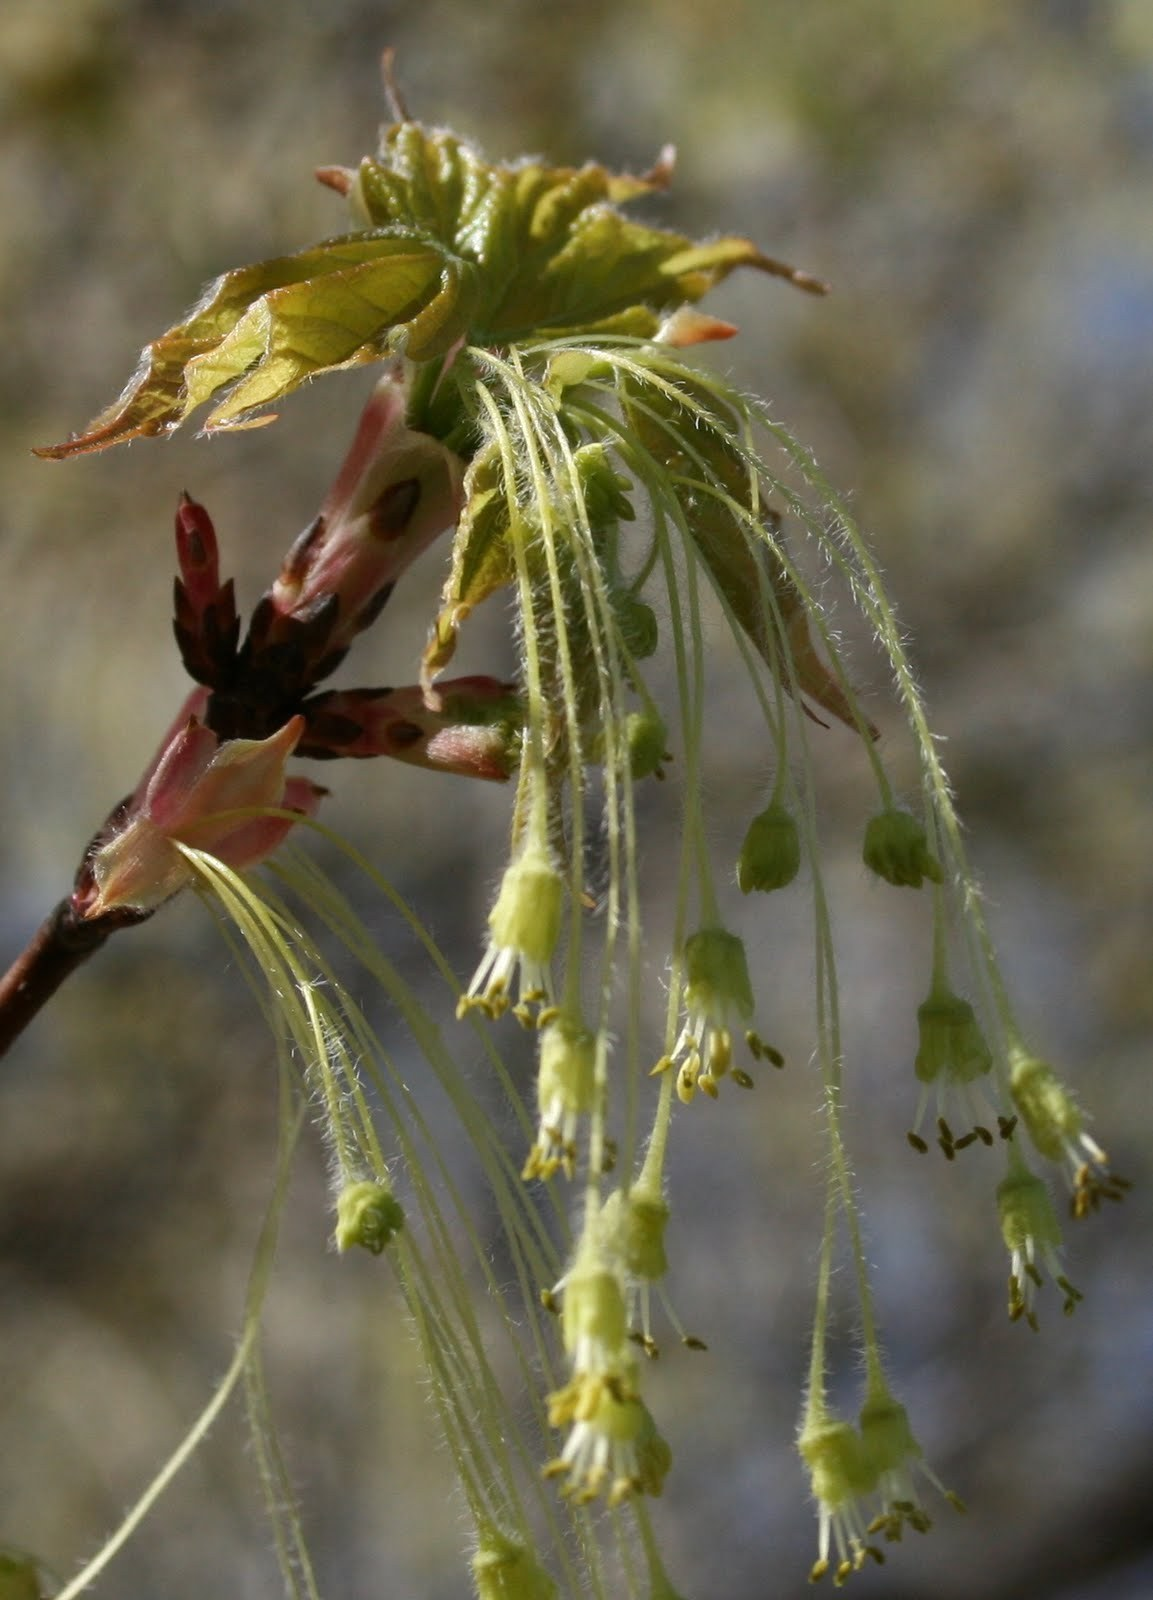 The flower of a sugar maple. The stamens are long, allowing the pollen to be caught and distributed by the wind.